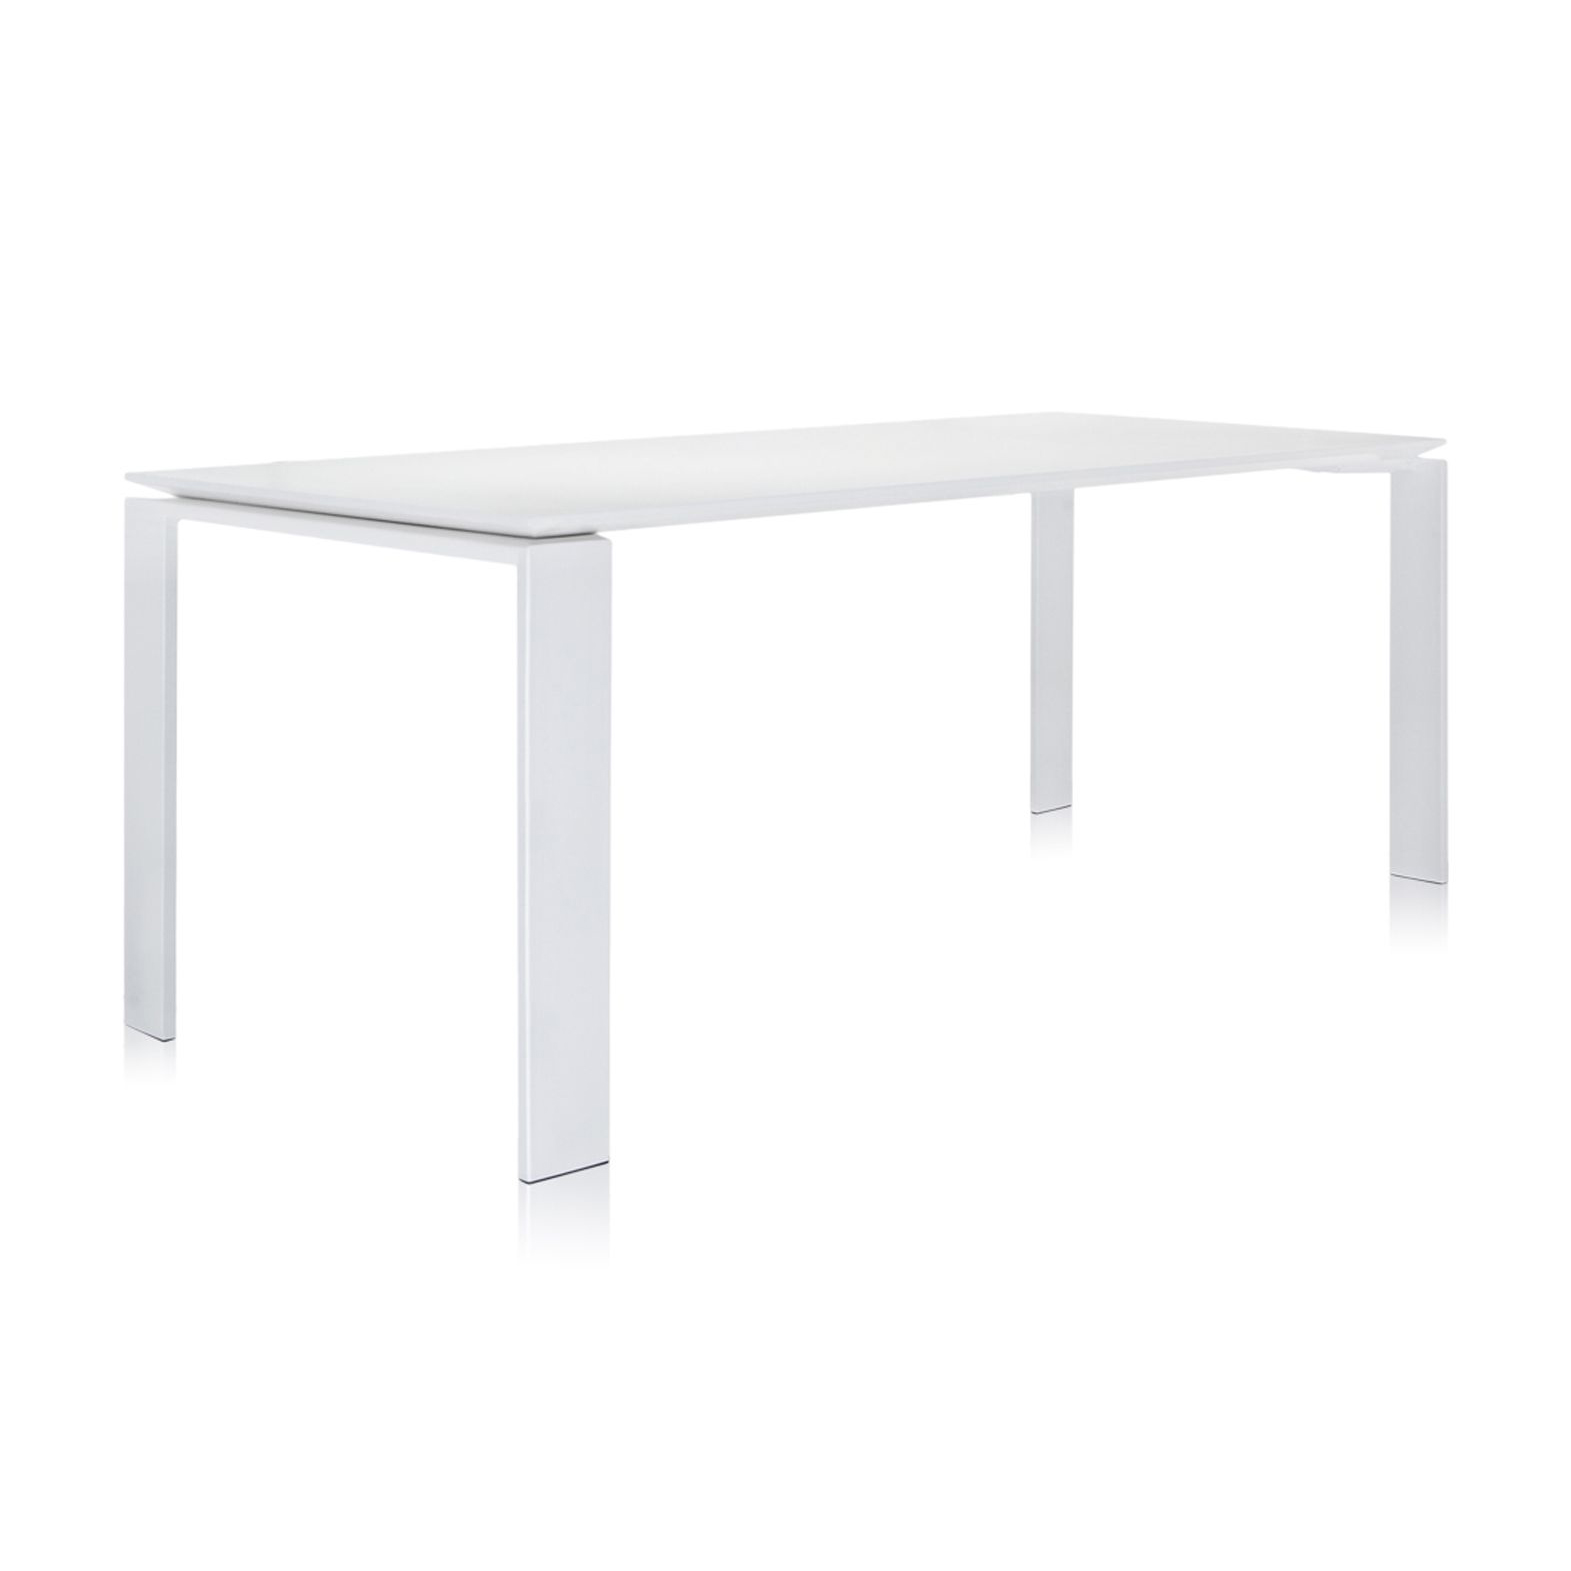 Kartell Four Table Scratch Proof Laminated Top